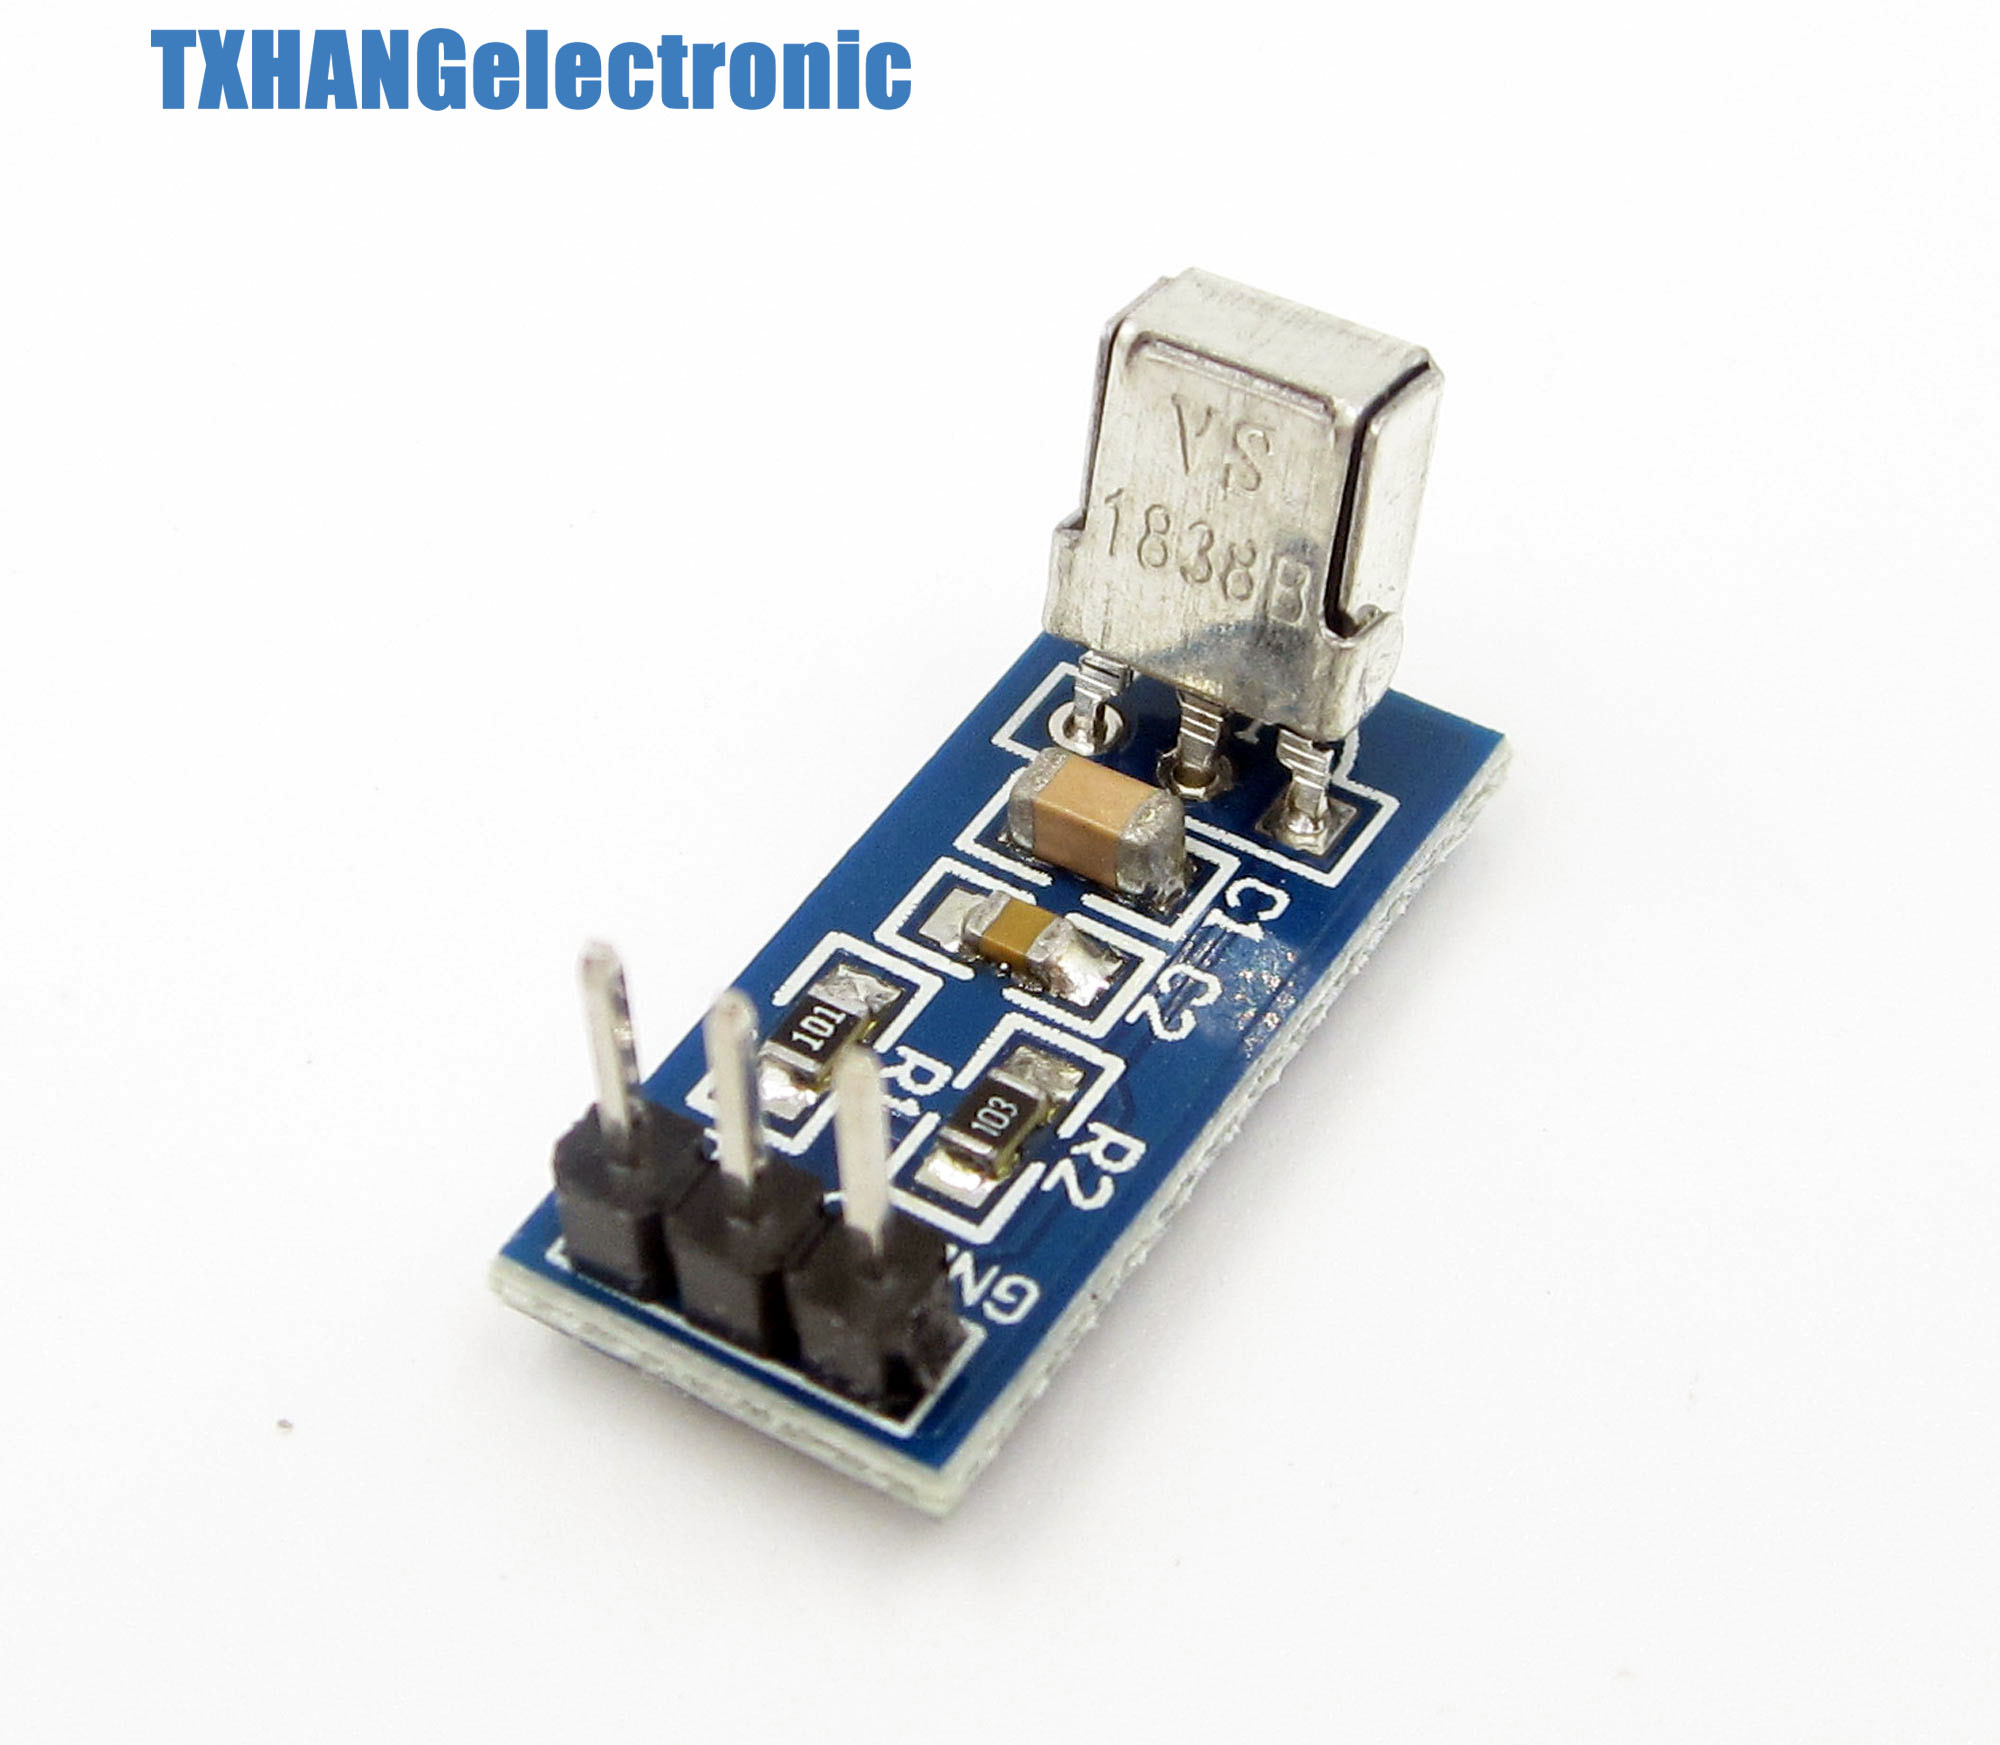 Tl1838 Vs1838b Vs1838 Infrared Receiver Module Remote Control Circuit In Integrated Circuits From Electronic Components Supplies On